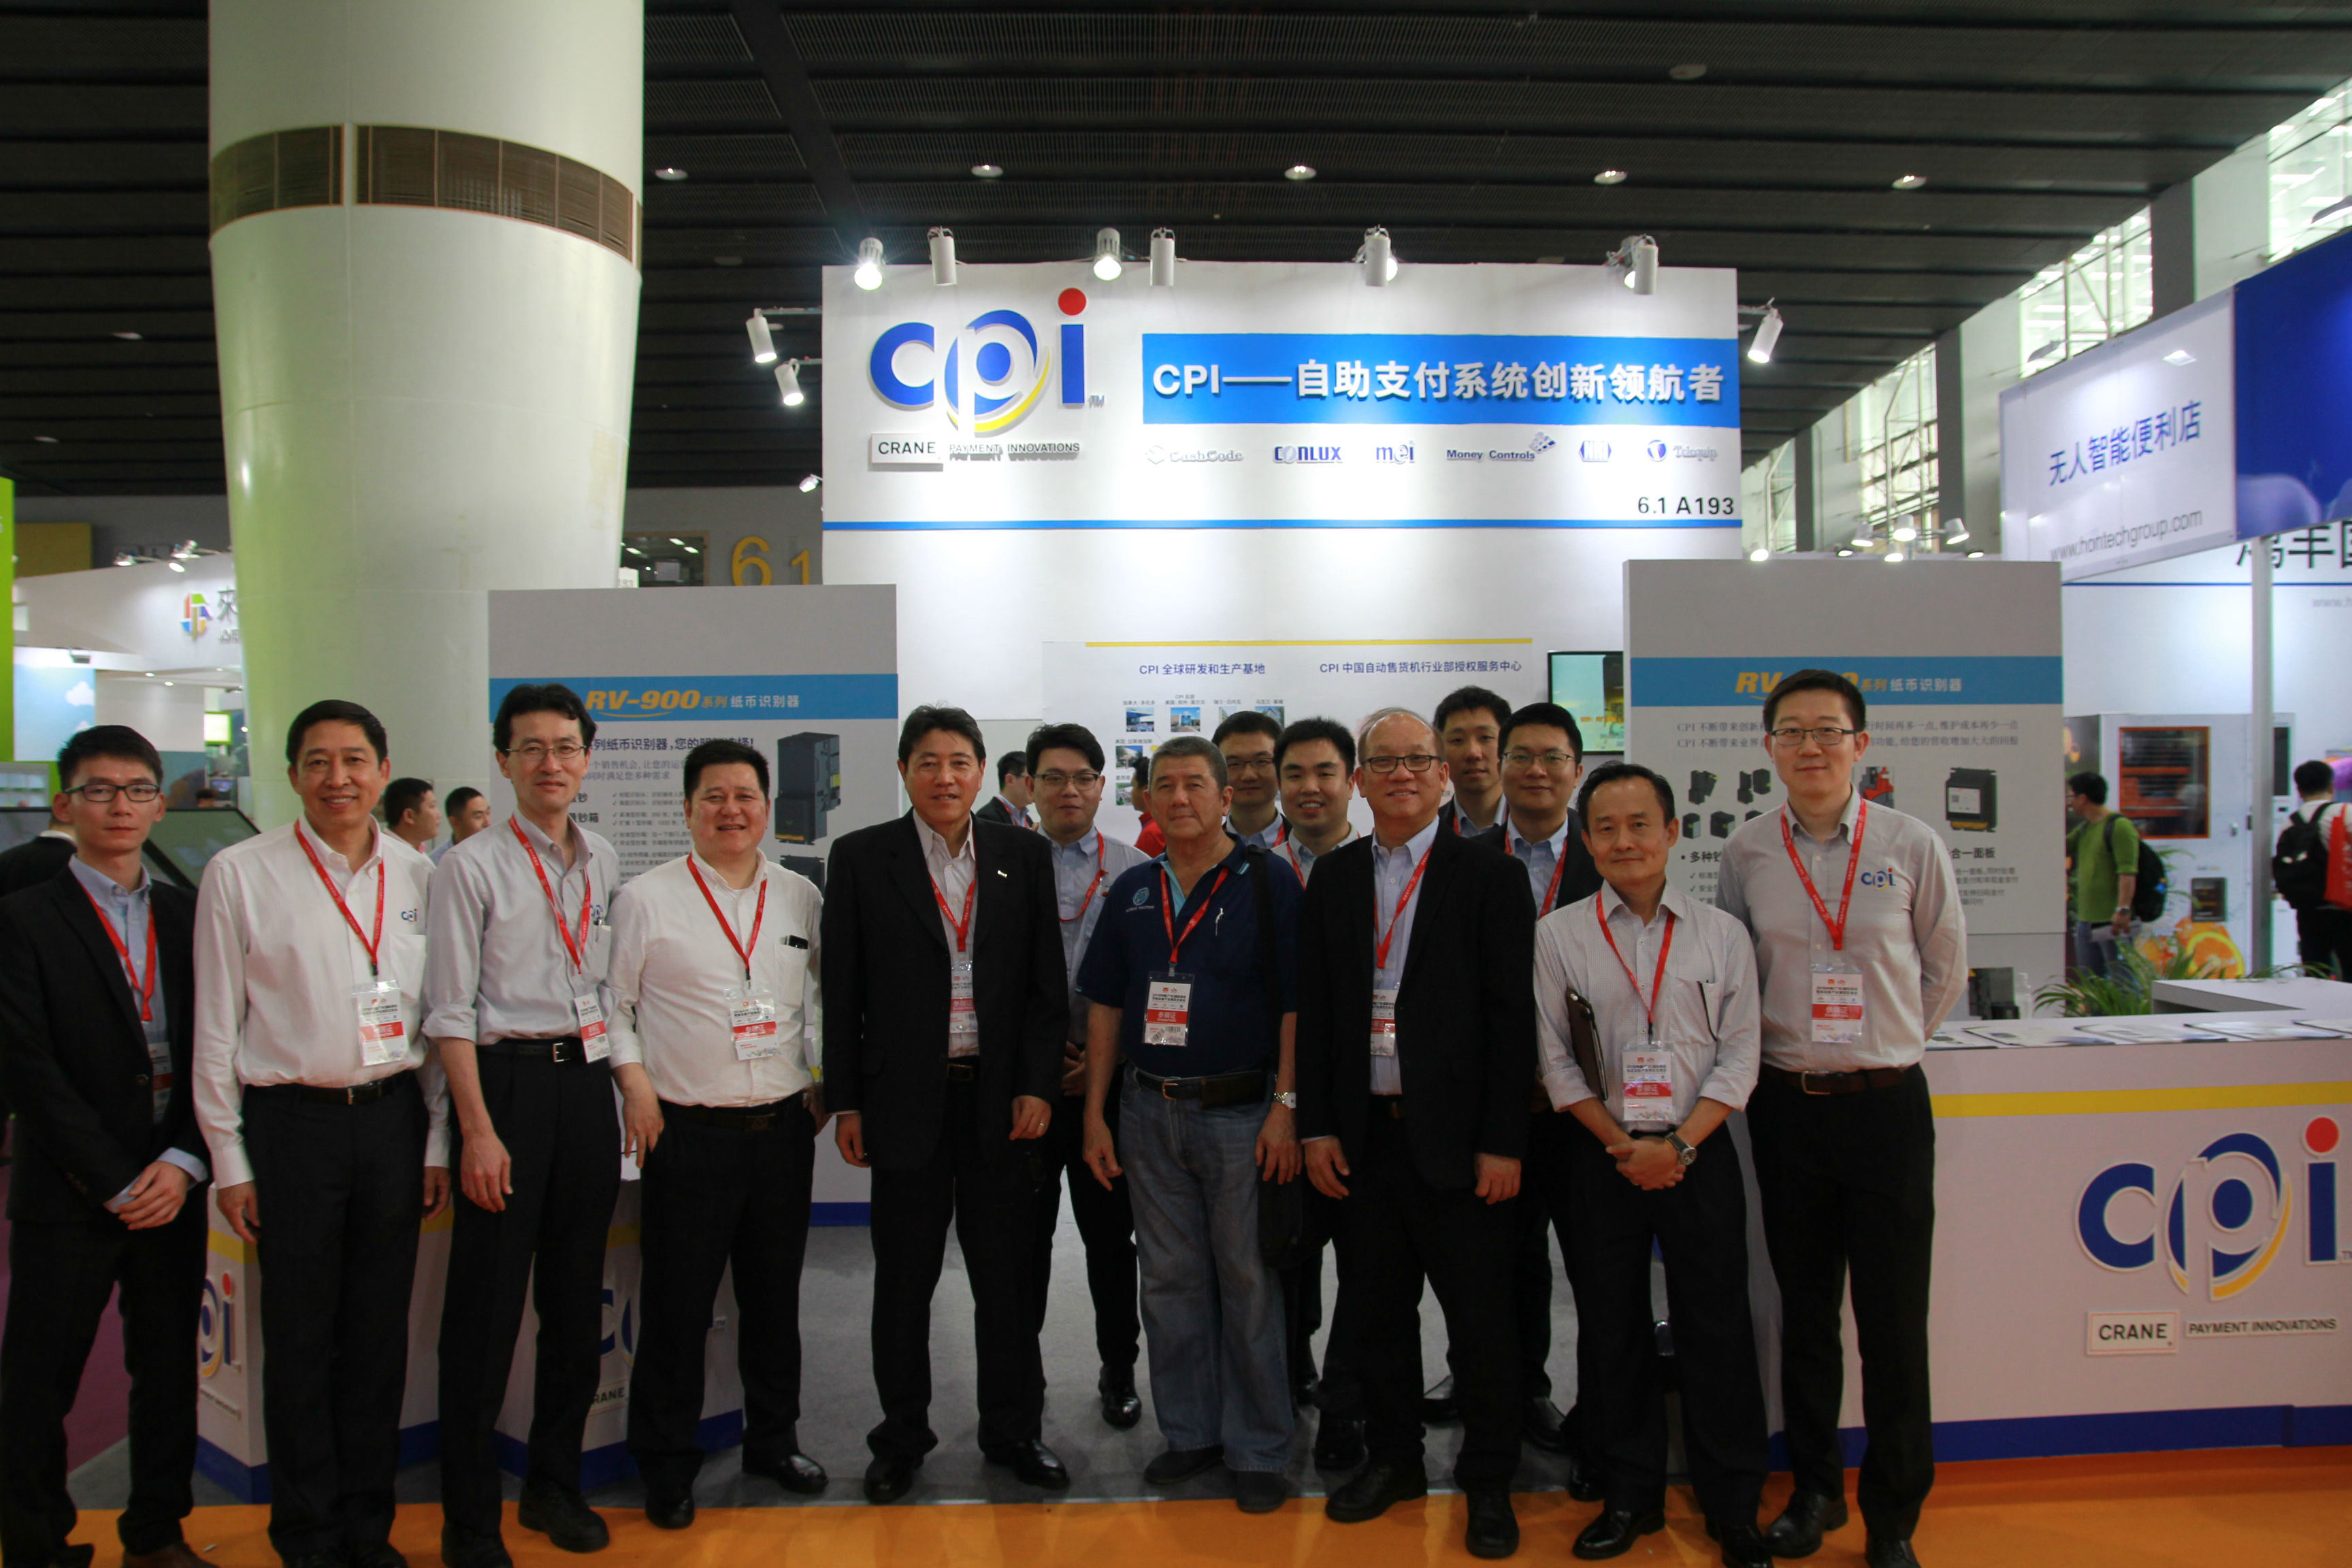 Crane Co  - Diversified Manufacturer of Engineered Industrial Products